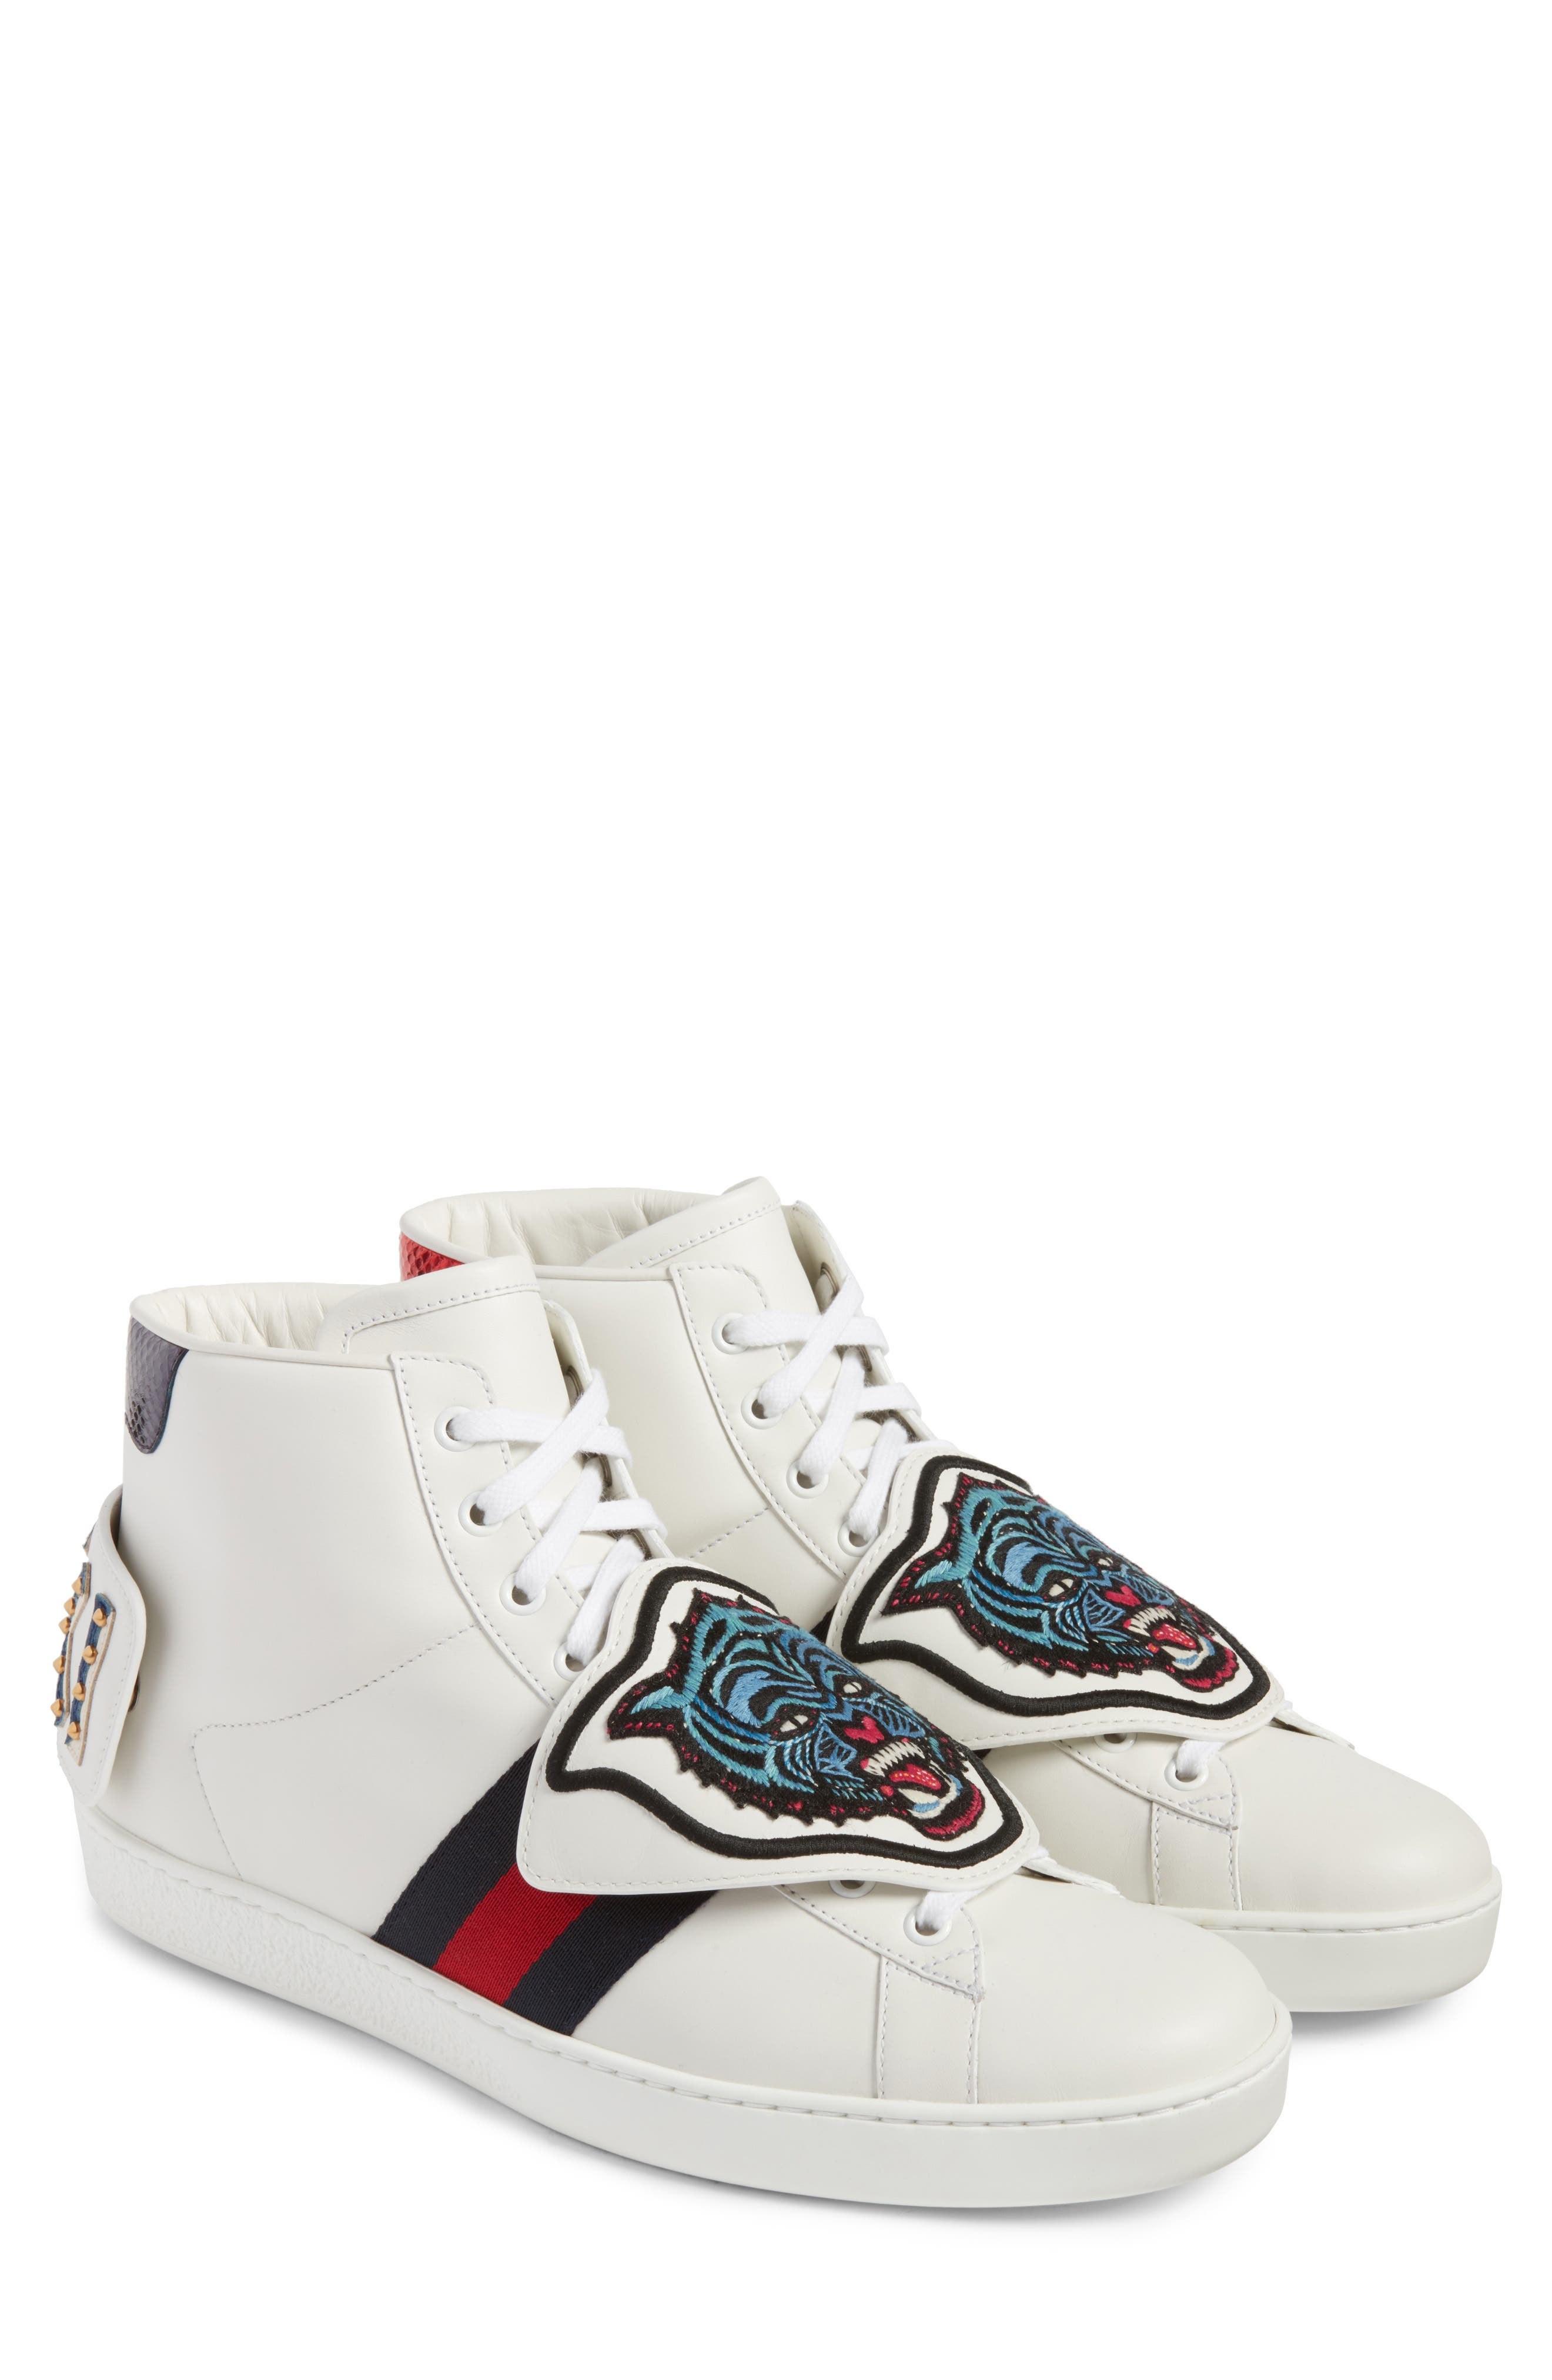 New Ace Jaguar Embroidered Patch High Top Sneaker,                             Main thumbnail 1, color,                             138